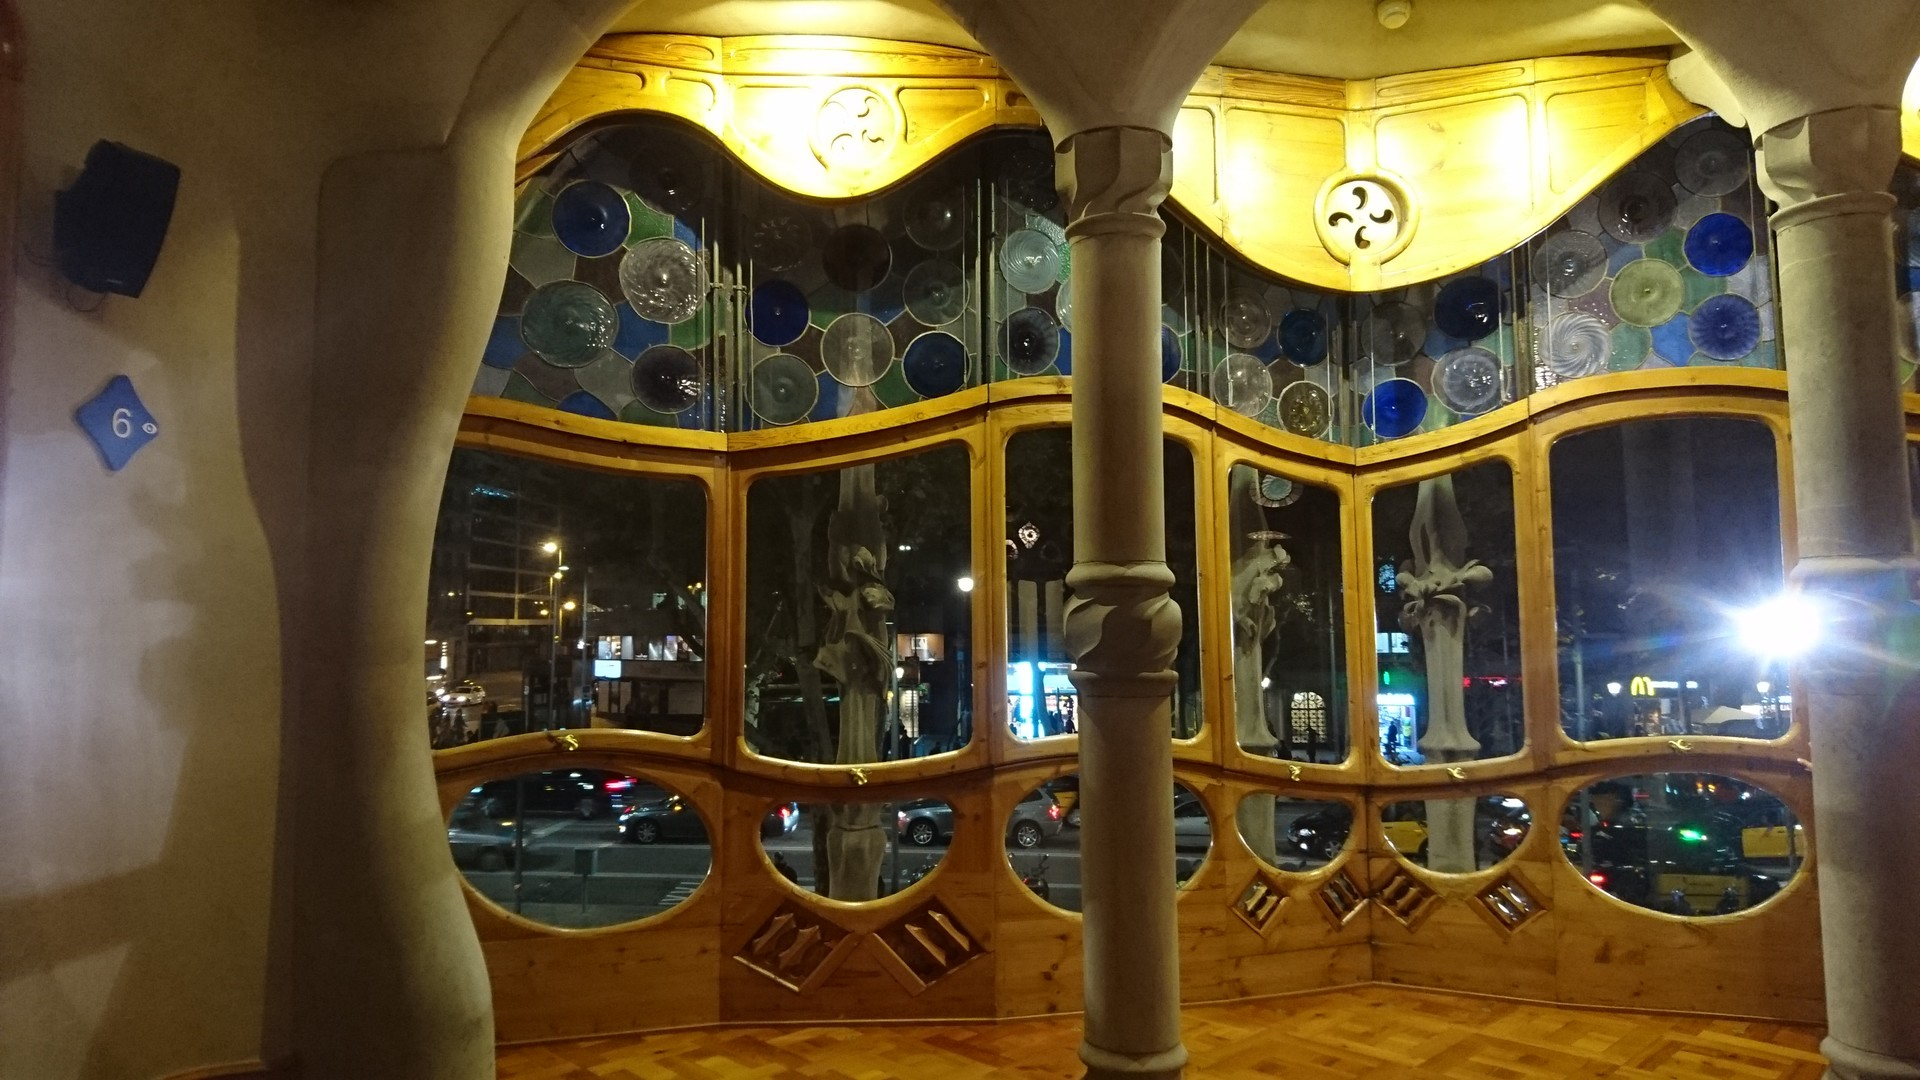 Casa Batllo is the highlight of Barcelona